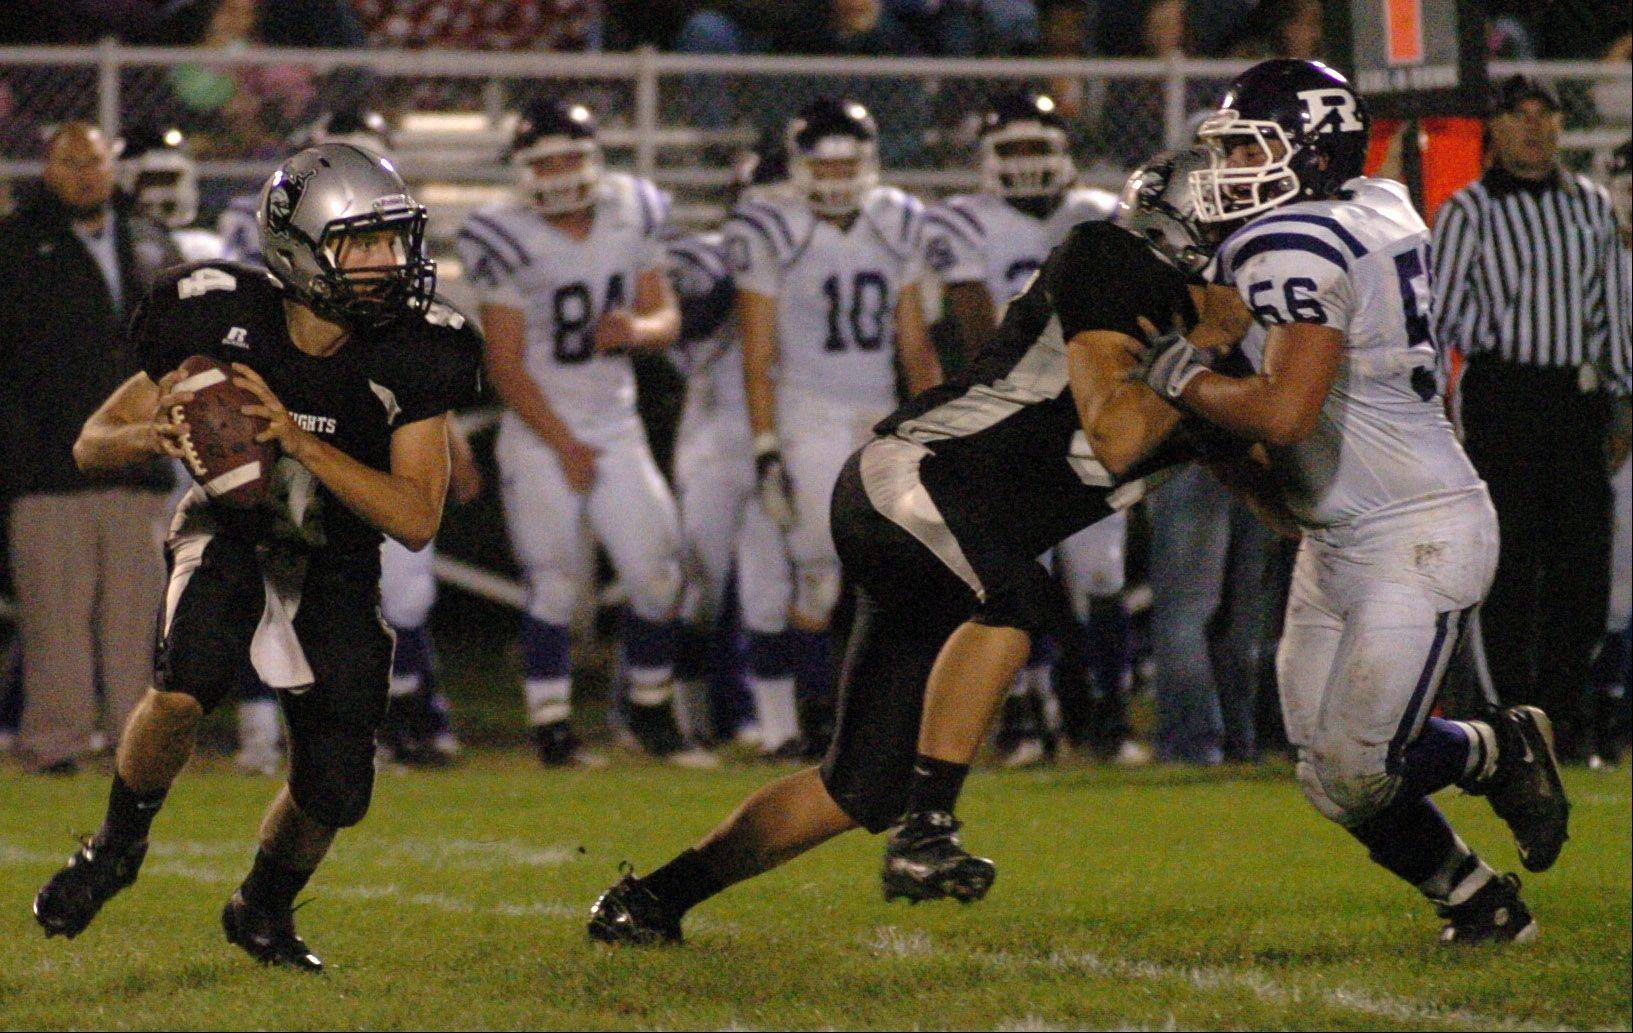 Kaneland quarterback Drew David attempts to escape Rochelle defenders Friday at Kaneland High School.